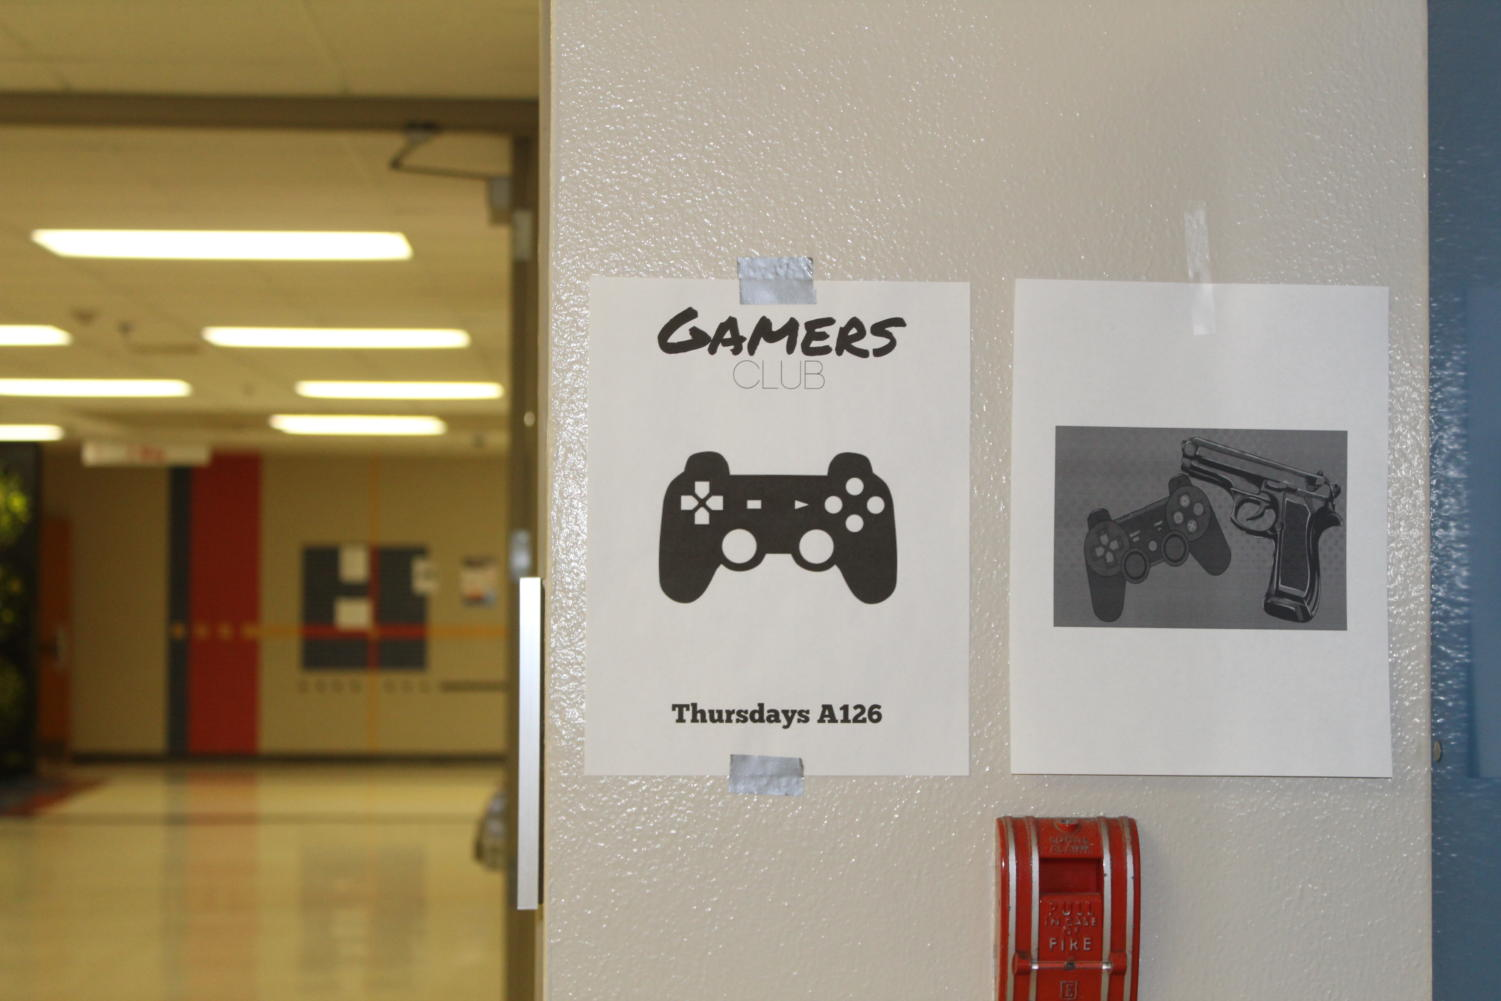 A friendly reminder from the Gamer's club at LHS next to a photo that characterizes how some feel about violent video games.